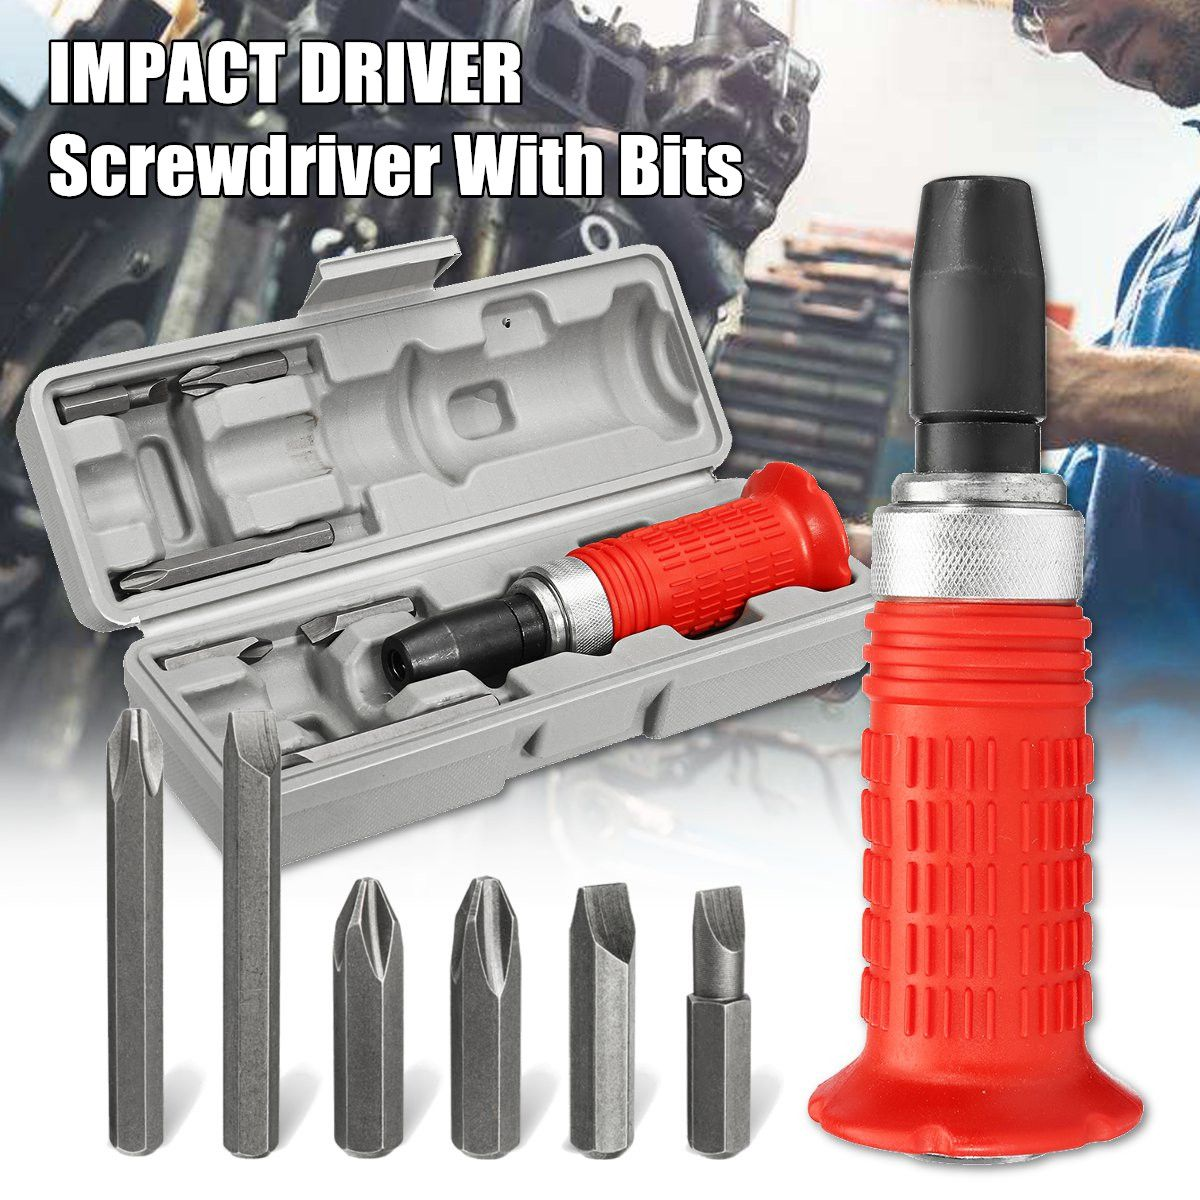 Impact Screwdriver Driver Set Carbon Steel Multi Bits Hammer Socket Repair Tools Kit Storage Box Screwdriver Head SetImpact Screwdriver Driver Set Carbon Steel Multi Bits Hammer Socket Repair Tools Kit Storage Box Screwdriver Head Set